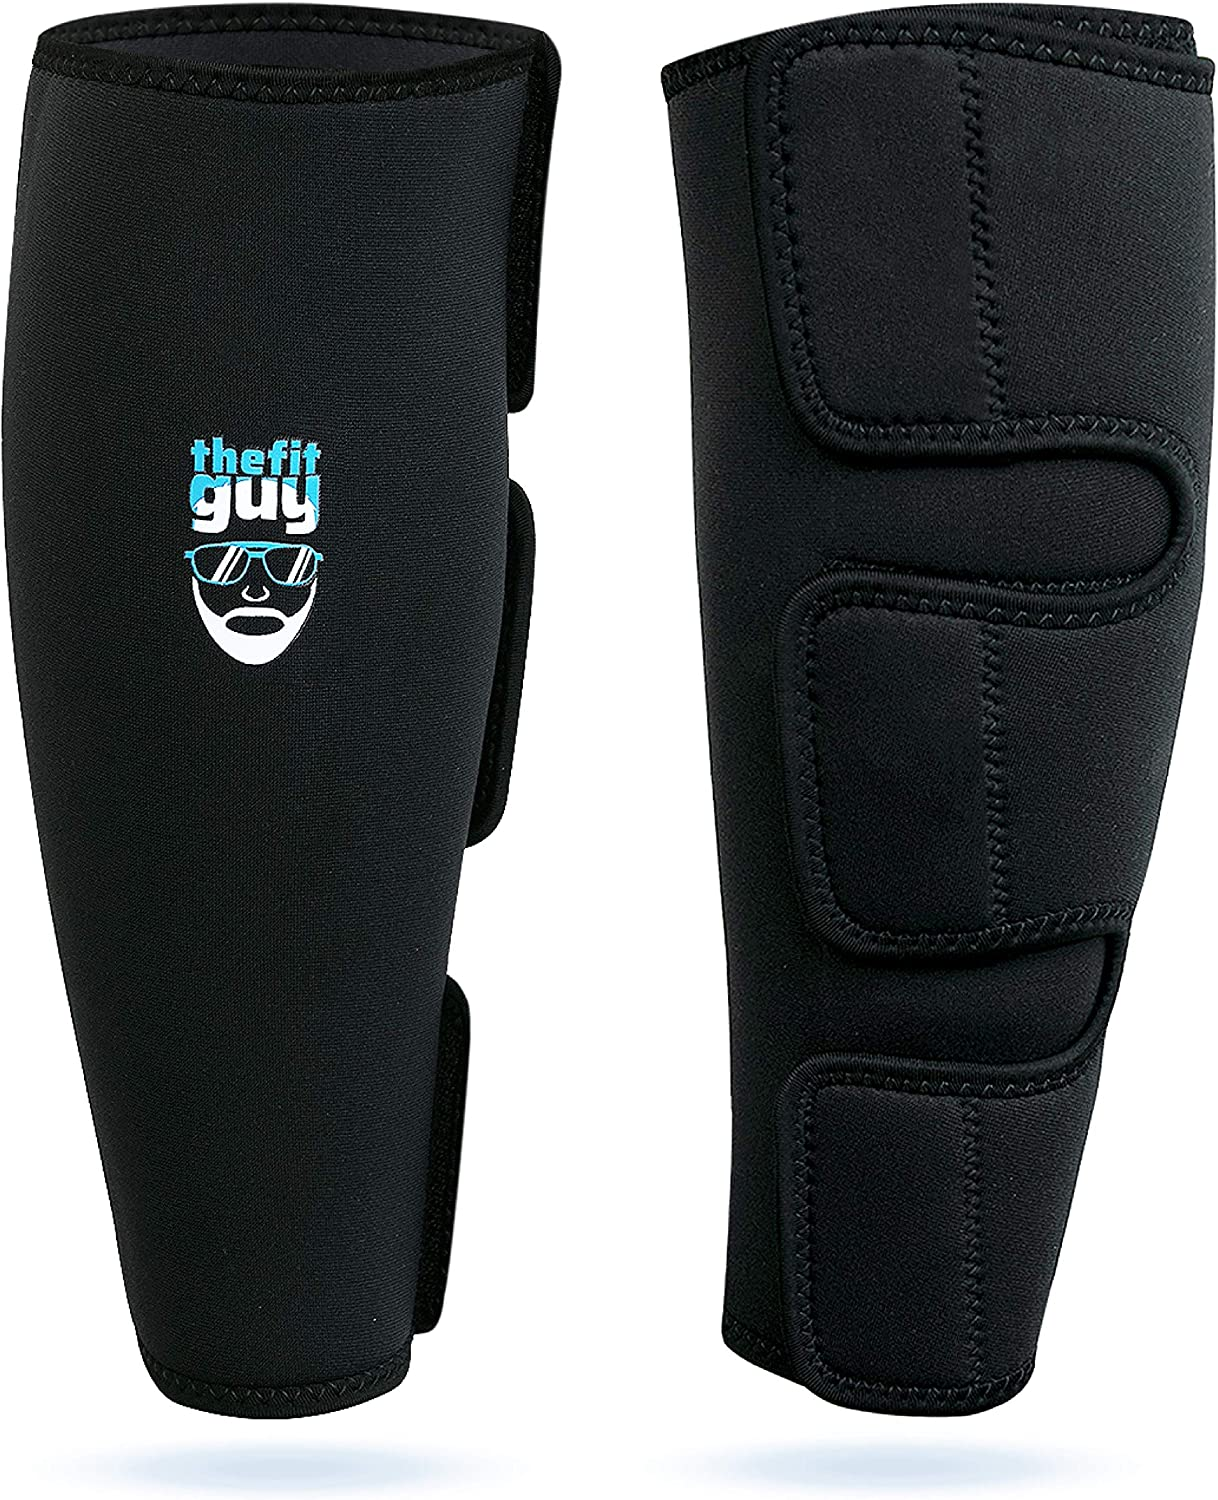 The Fit Guy shin guards